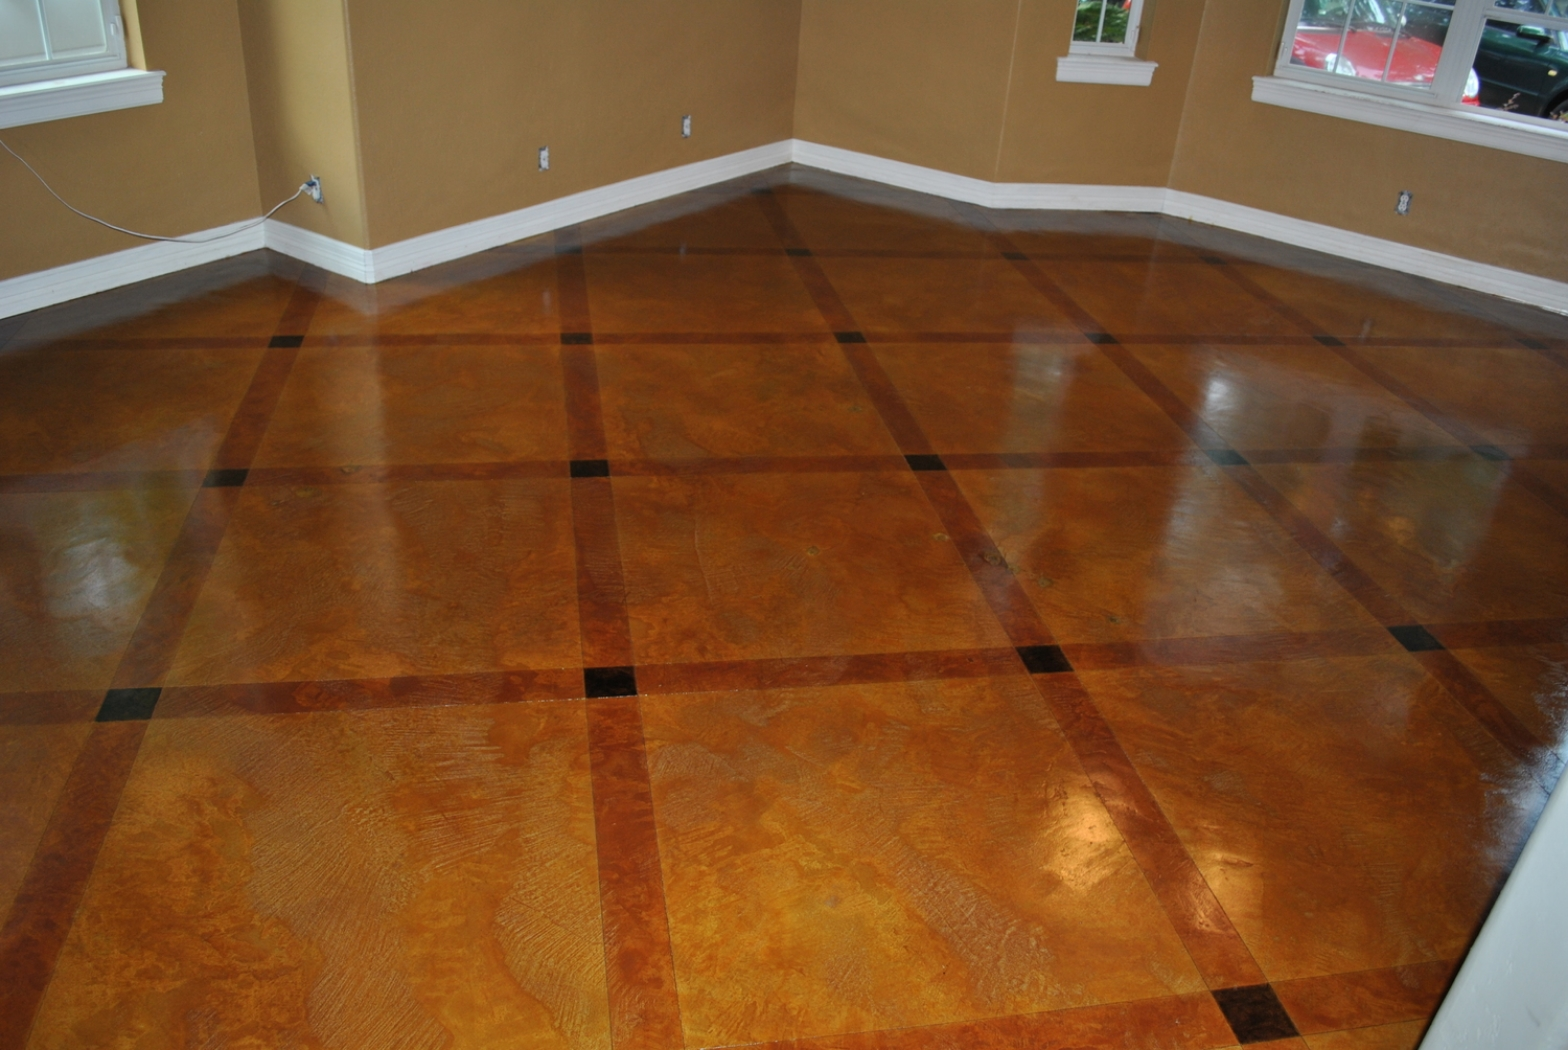 Stained Concrete with Double Diamond Pattern